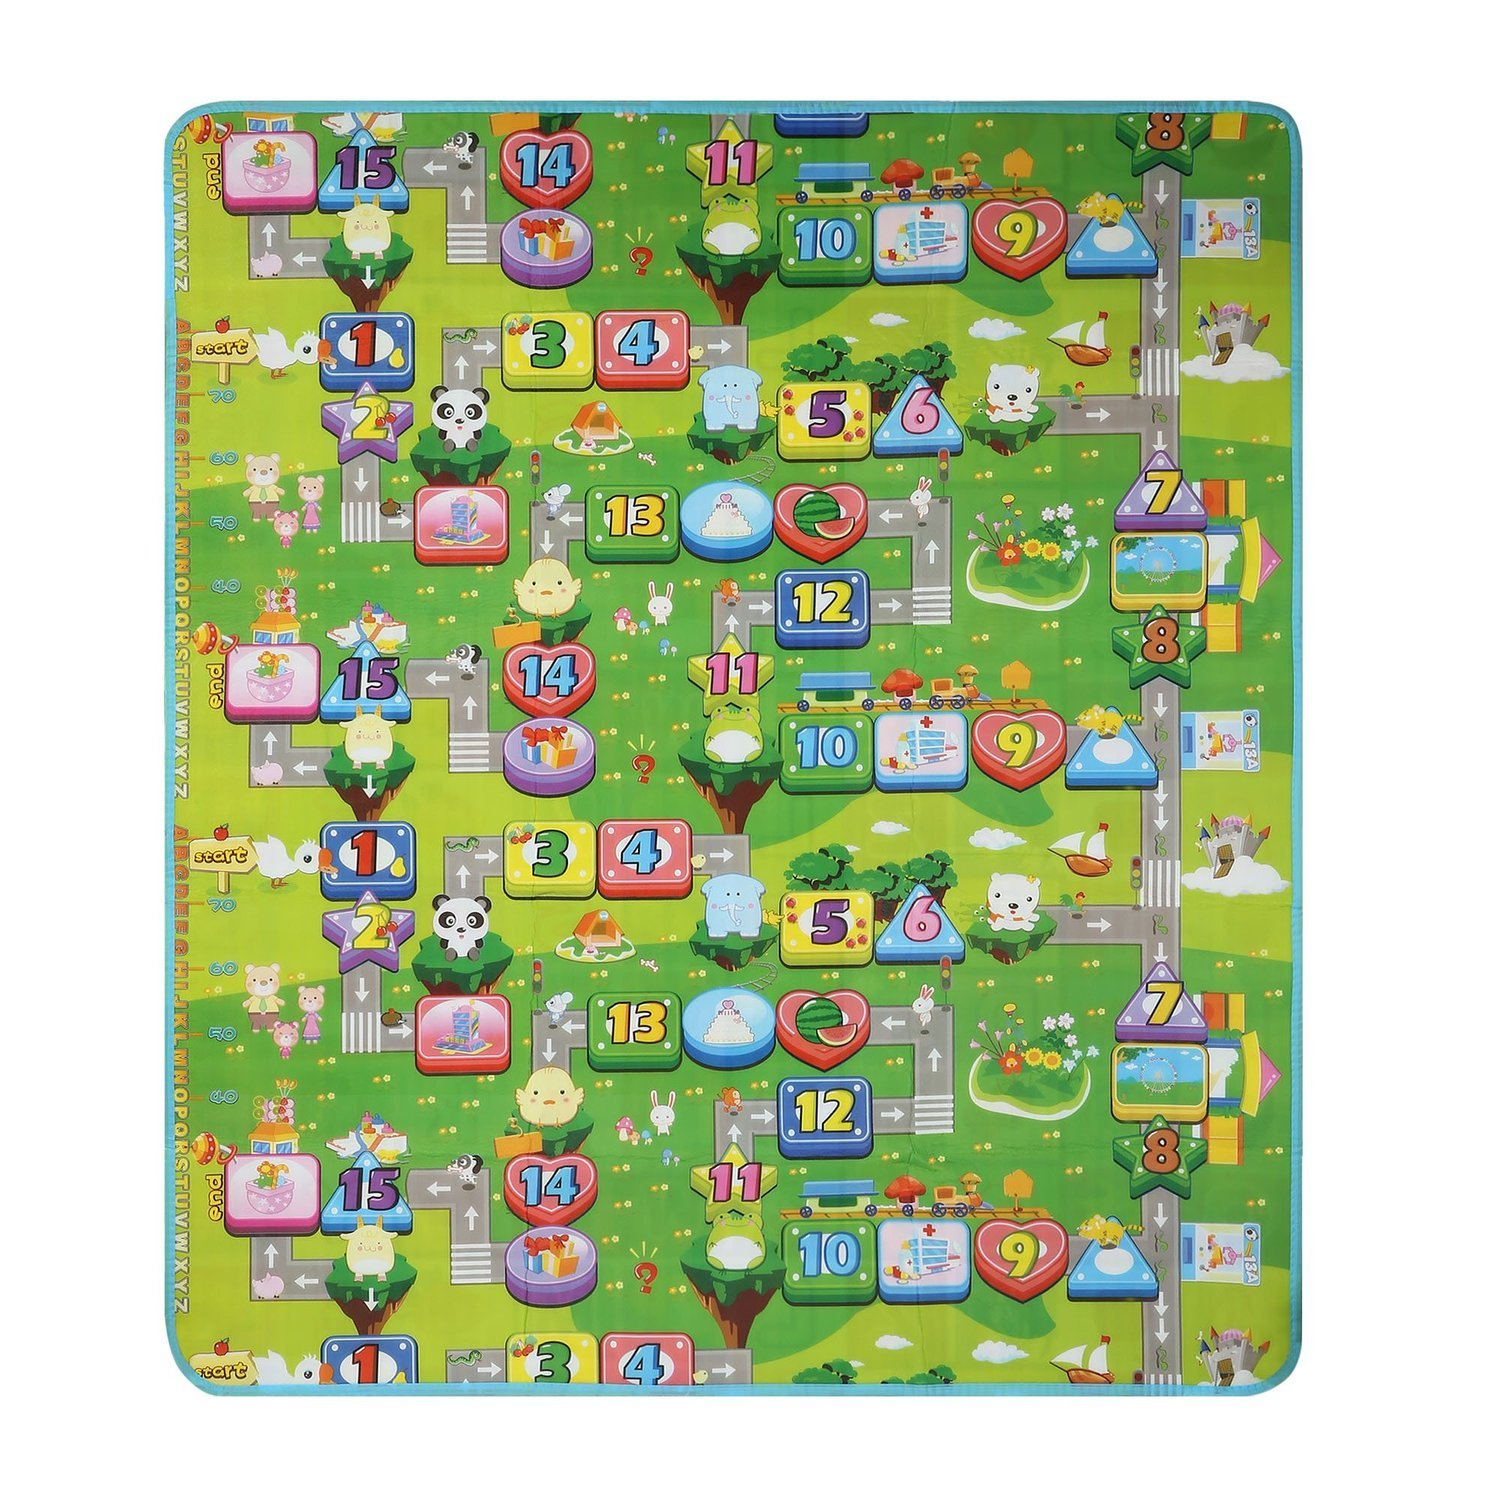 Garwarm 7159inches Extra Large Baby Crawling Mat Baby Play Mat Game Mat,0.2-Inch Thick (US STORE) by Garwarm (Image #4)